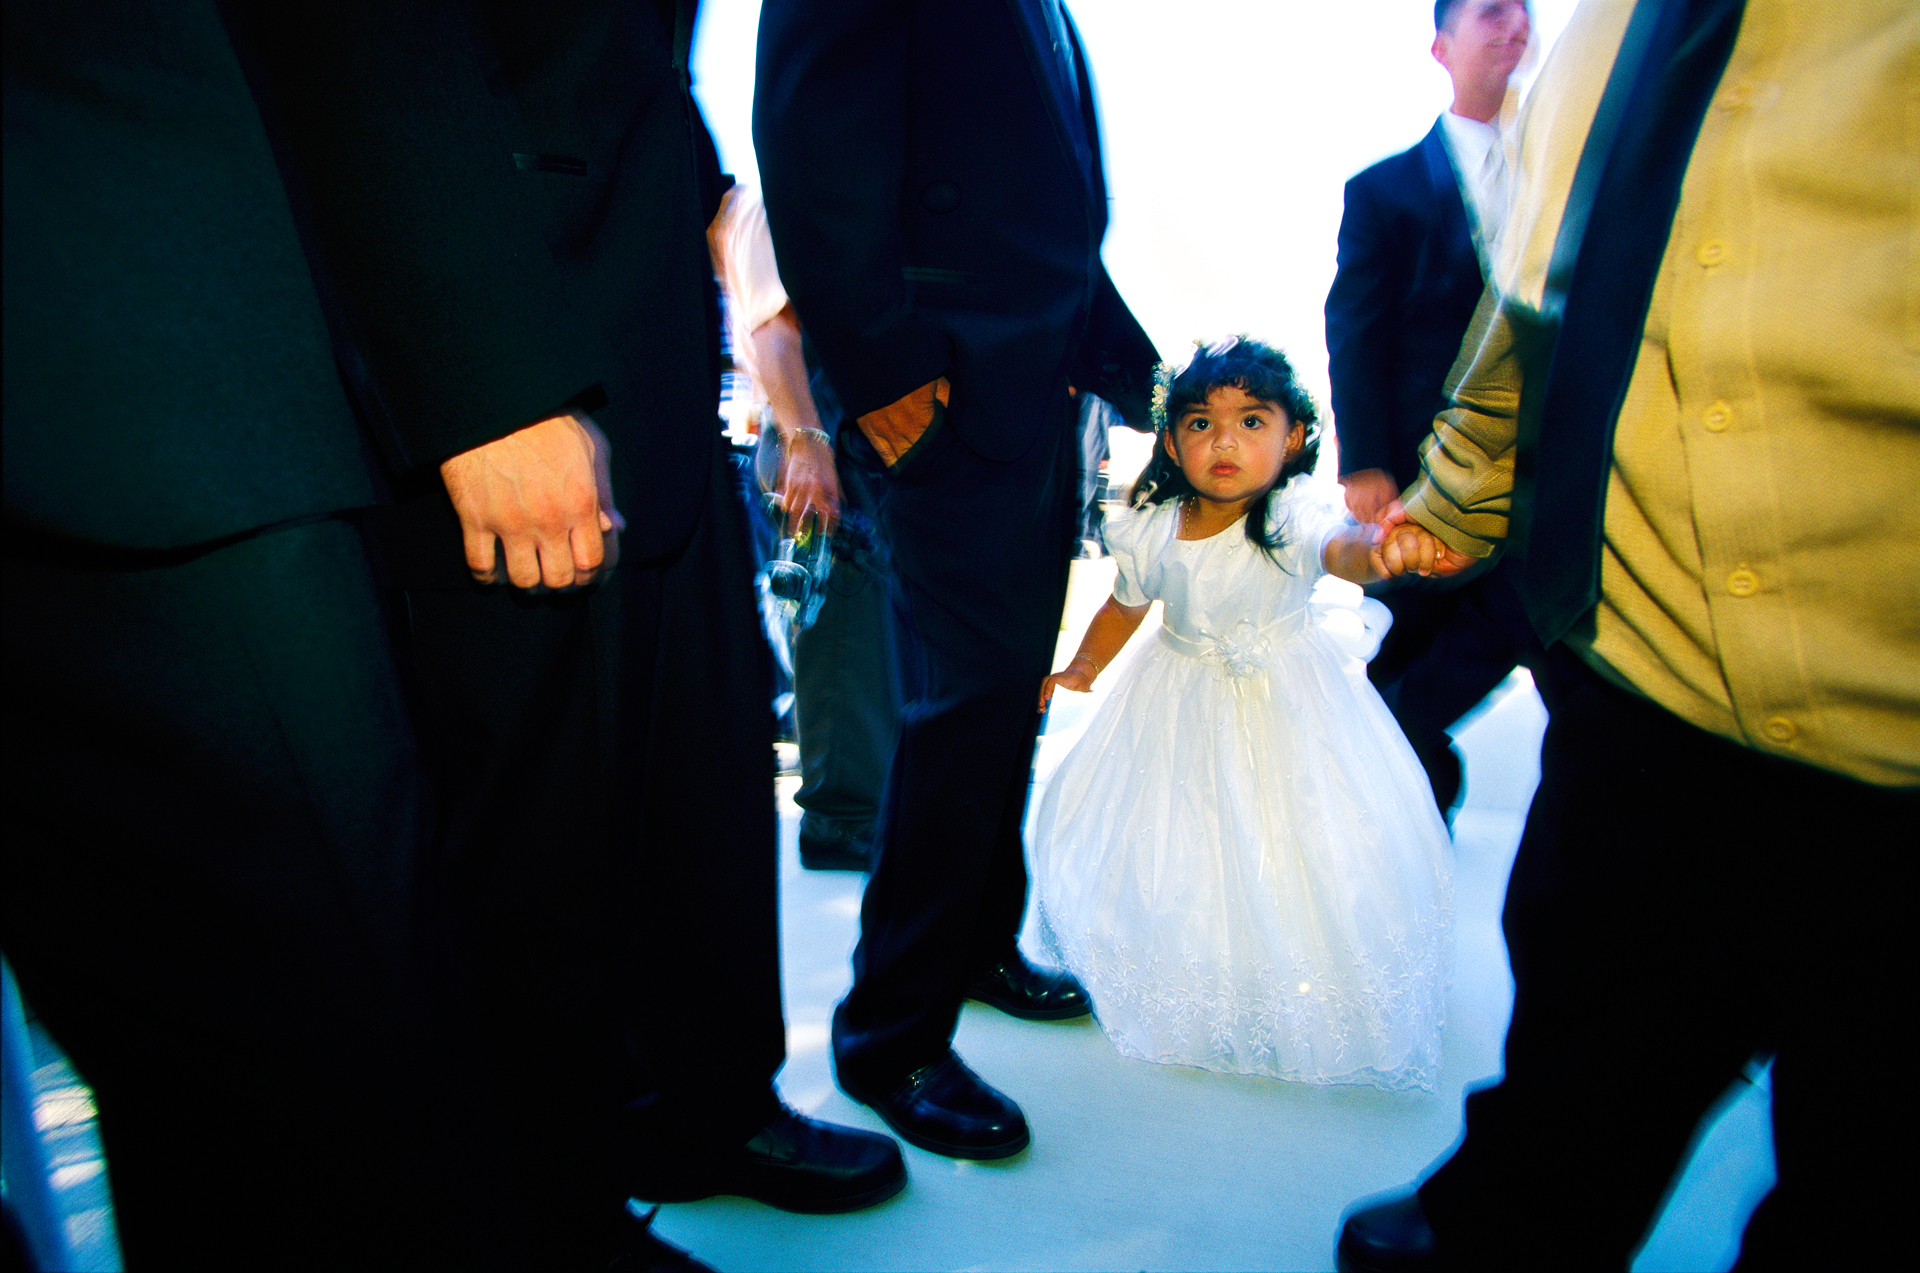 This little girl is headed for her aunt's quinceañera, a Hispanic rite of passage for Latina girls turning 15.  Niland